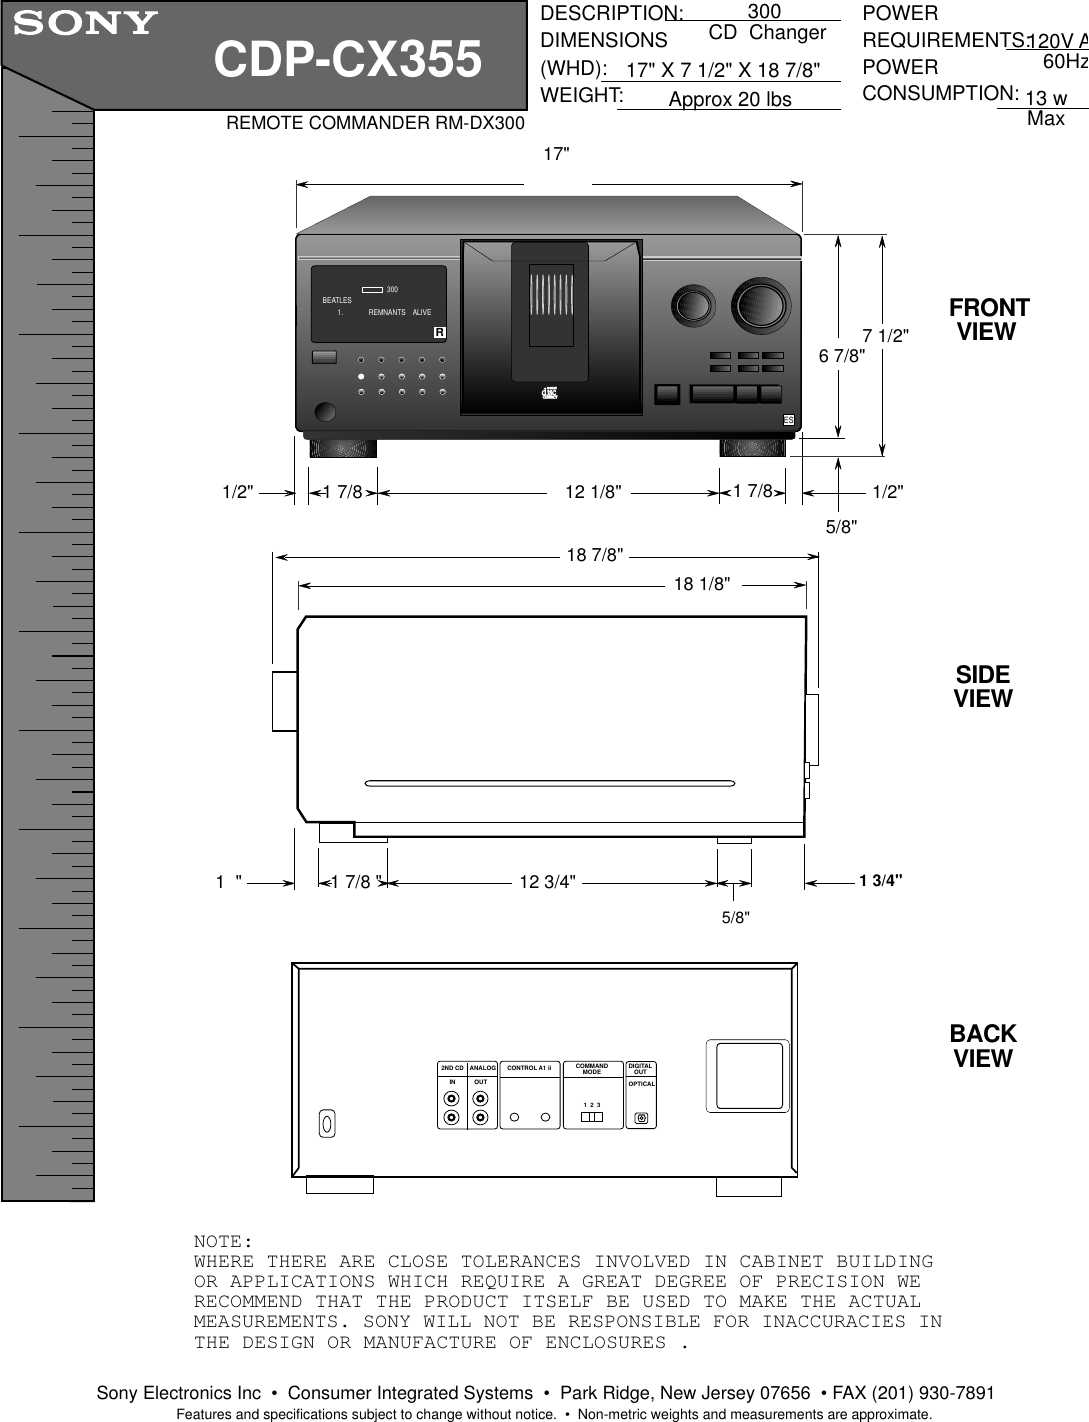 Wiring Diagram For Panel Is It Correct Manual Guide